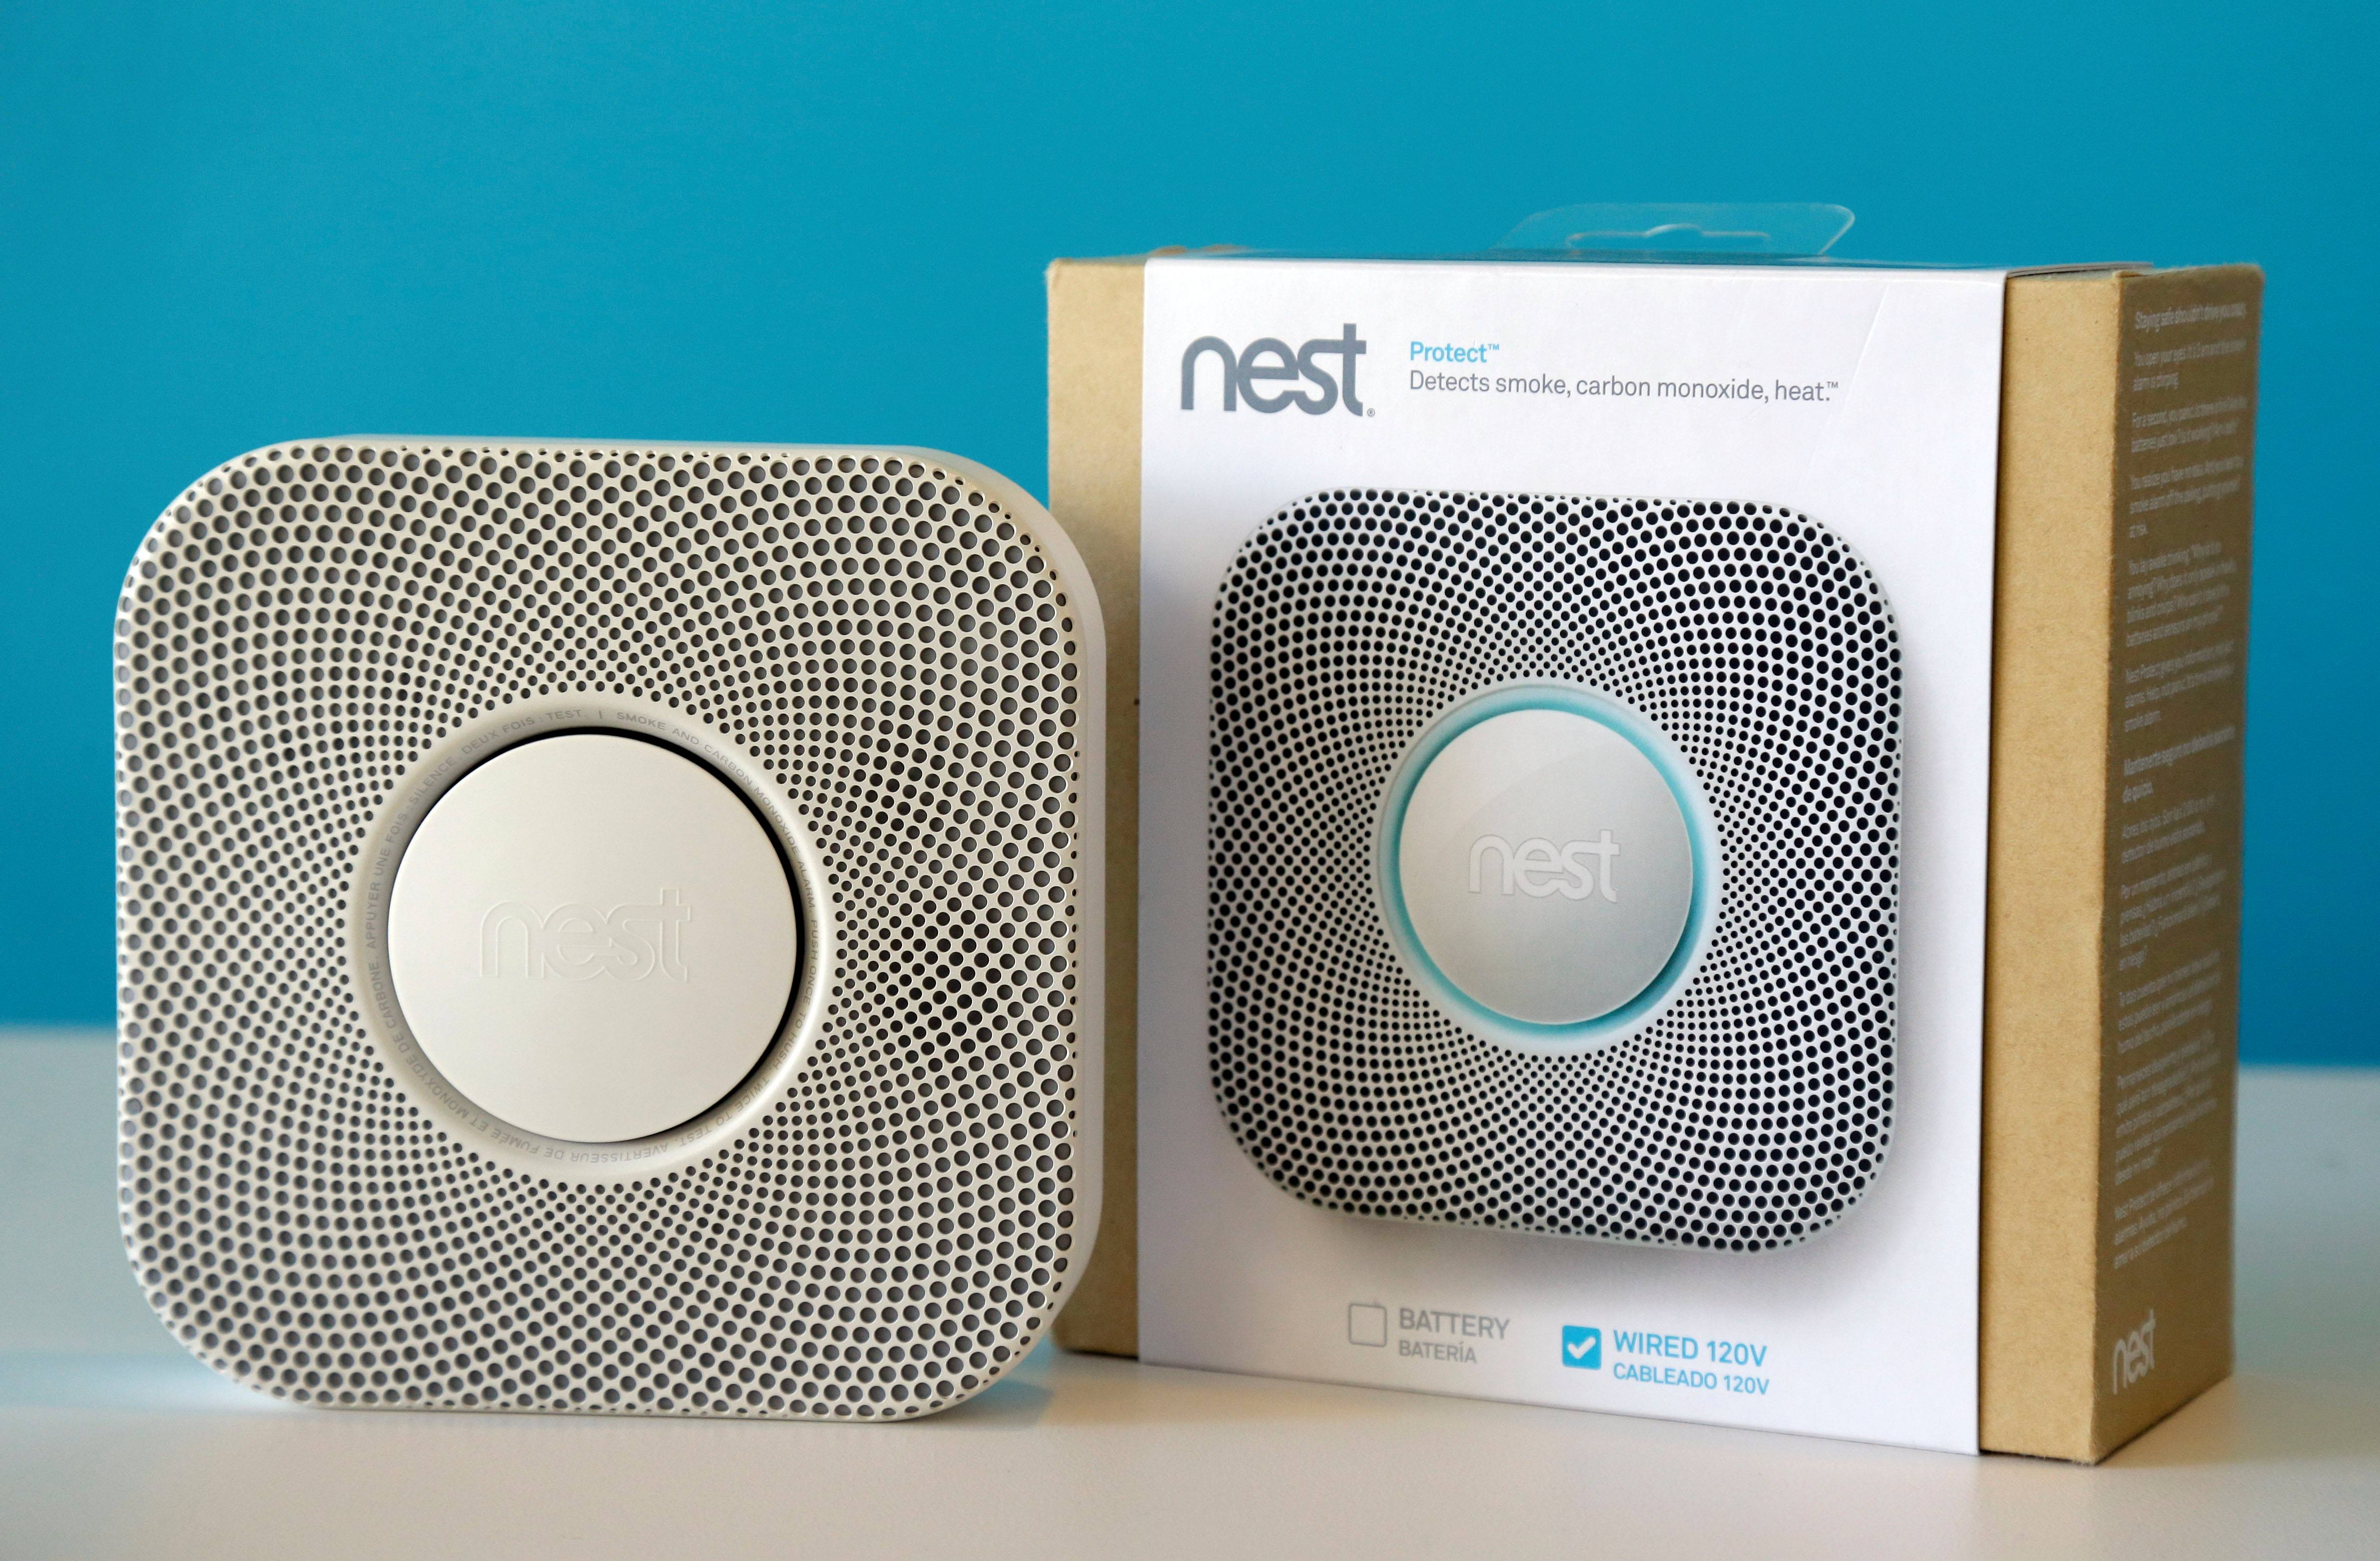 The high-tech home monitoring device company Nest Labs is disabling a feature on its smoke alarms due to the risk that owners could unintentionally turn off the device with the wave of a hand.